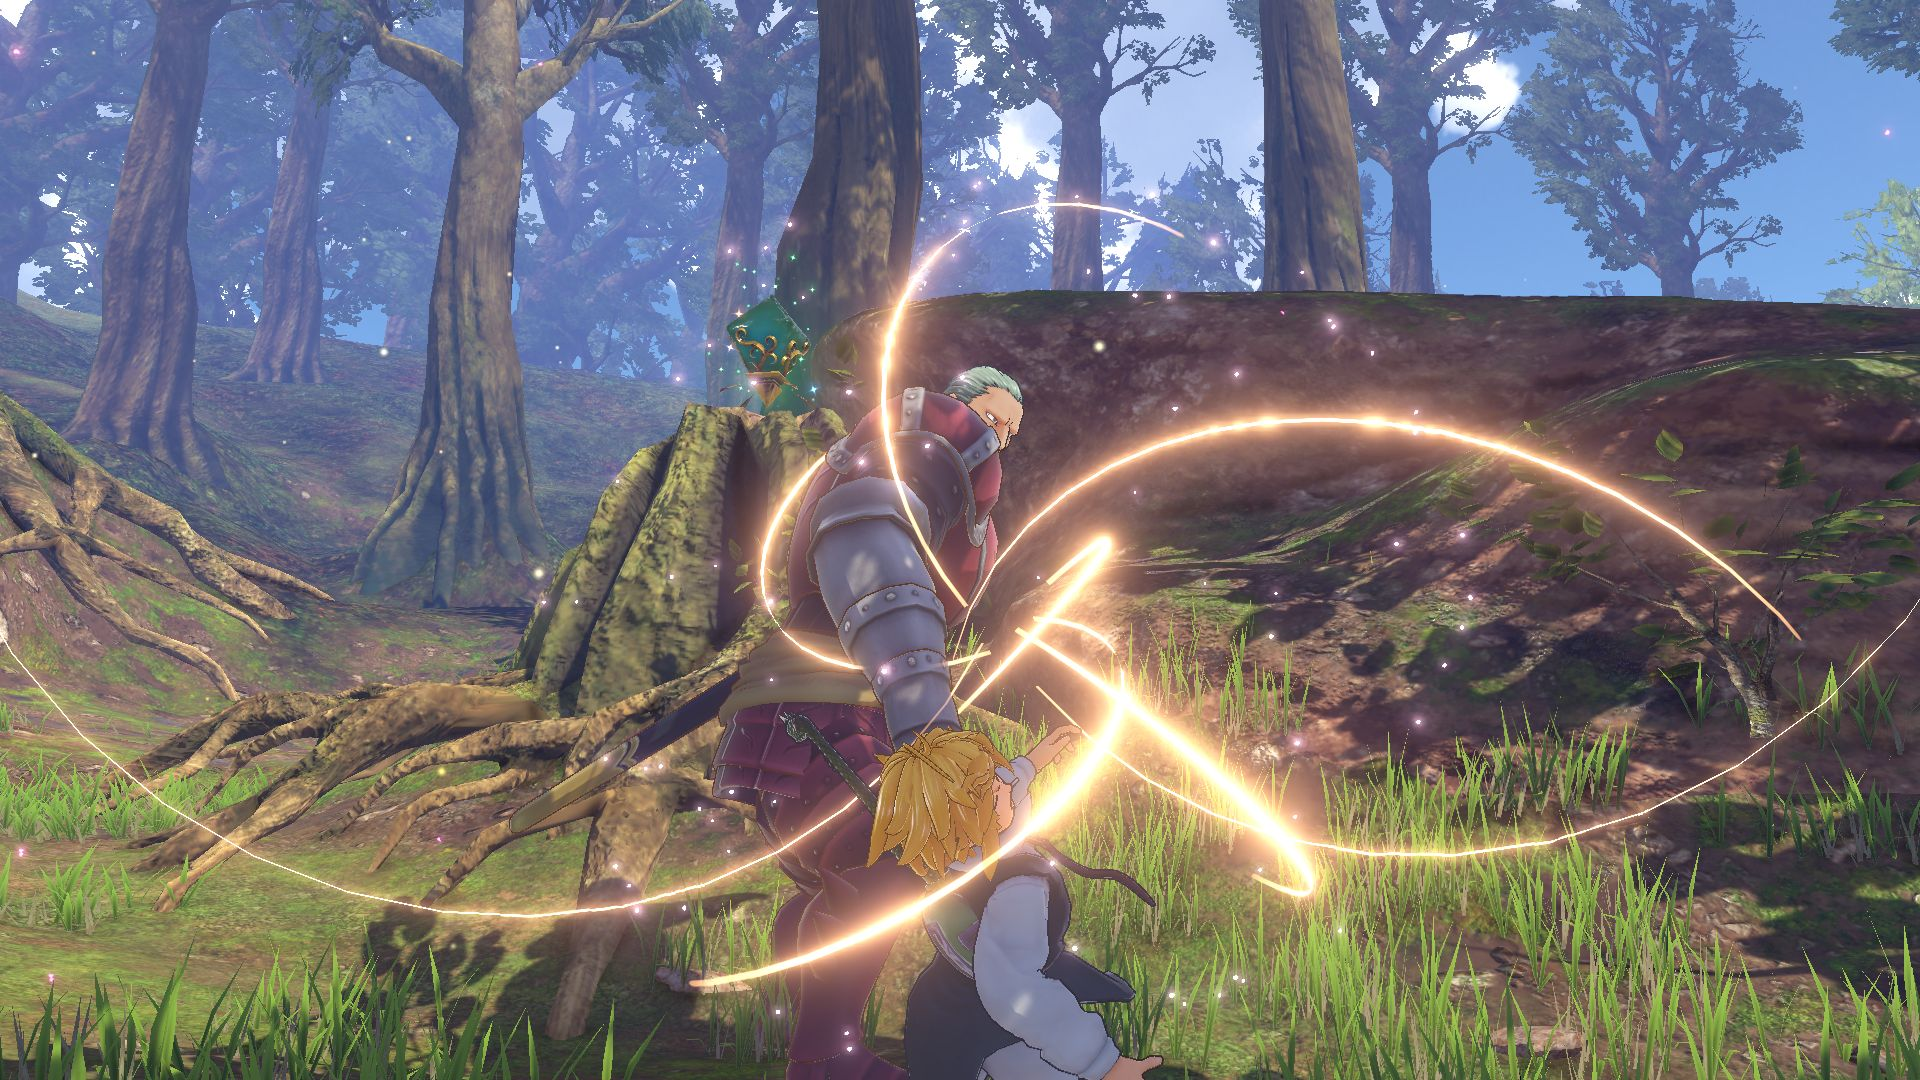 3d Wallpapers Of God And Goddess The Seven Deadly Sins Knights Of Britannia Coming To Ps4